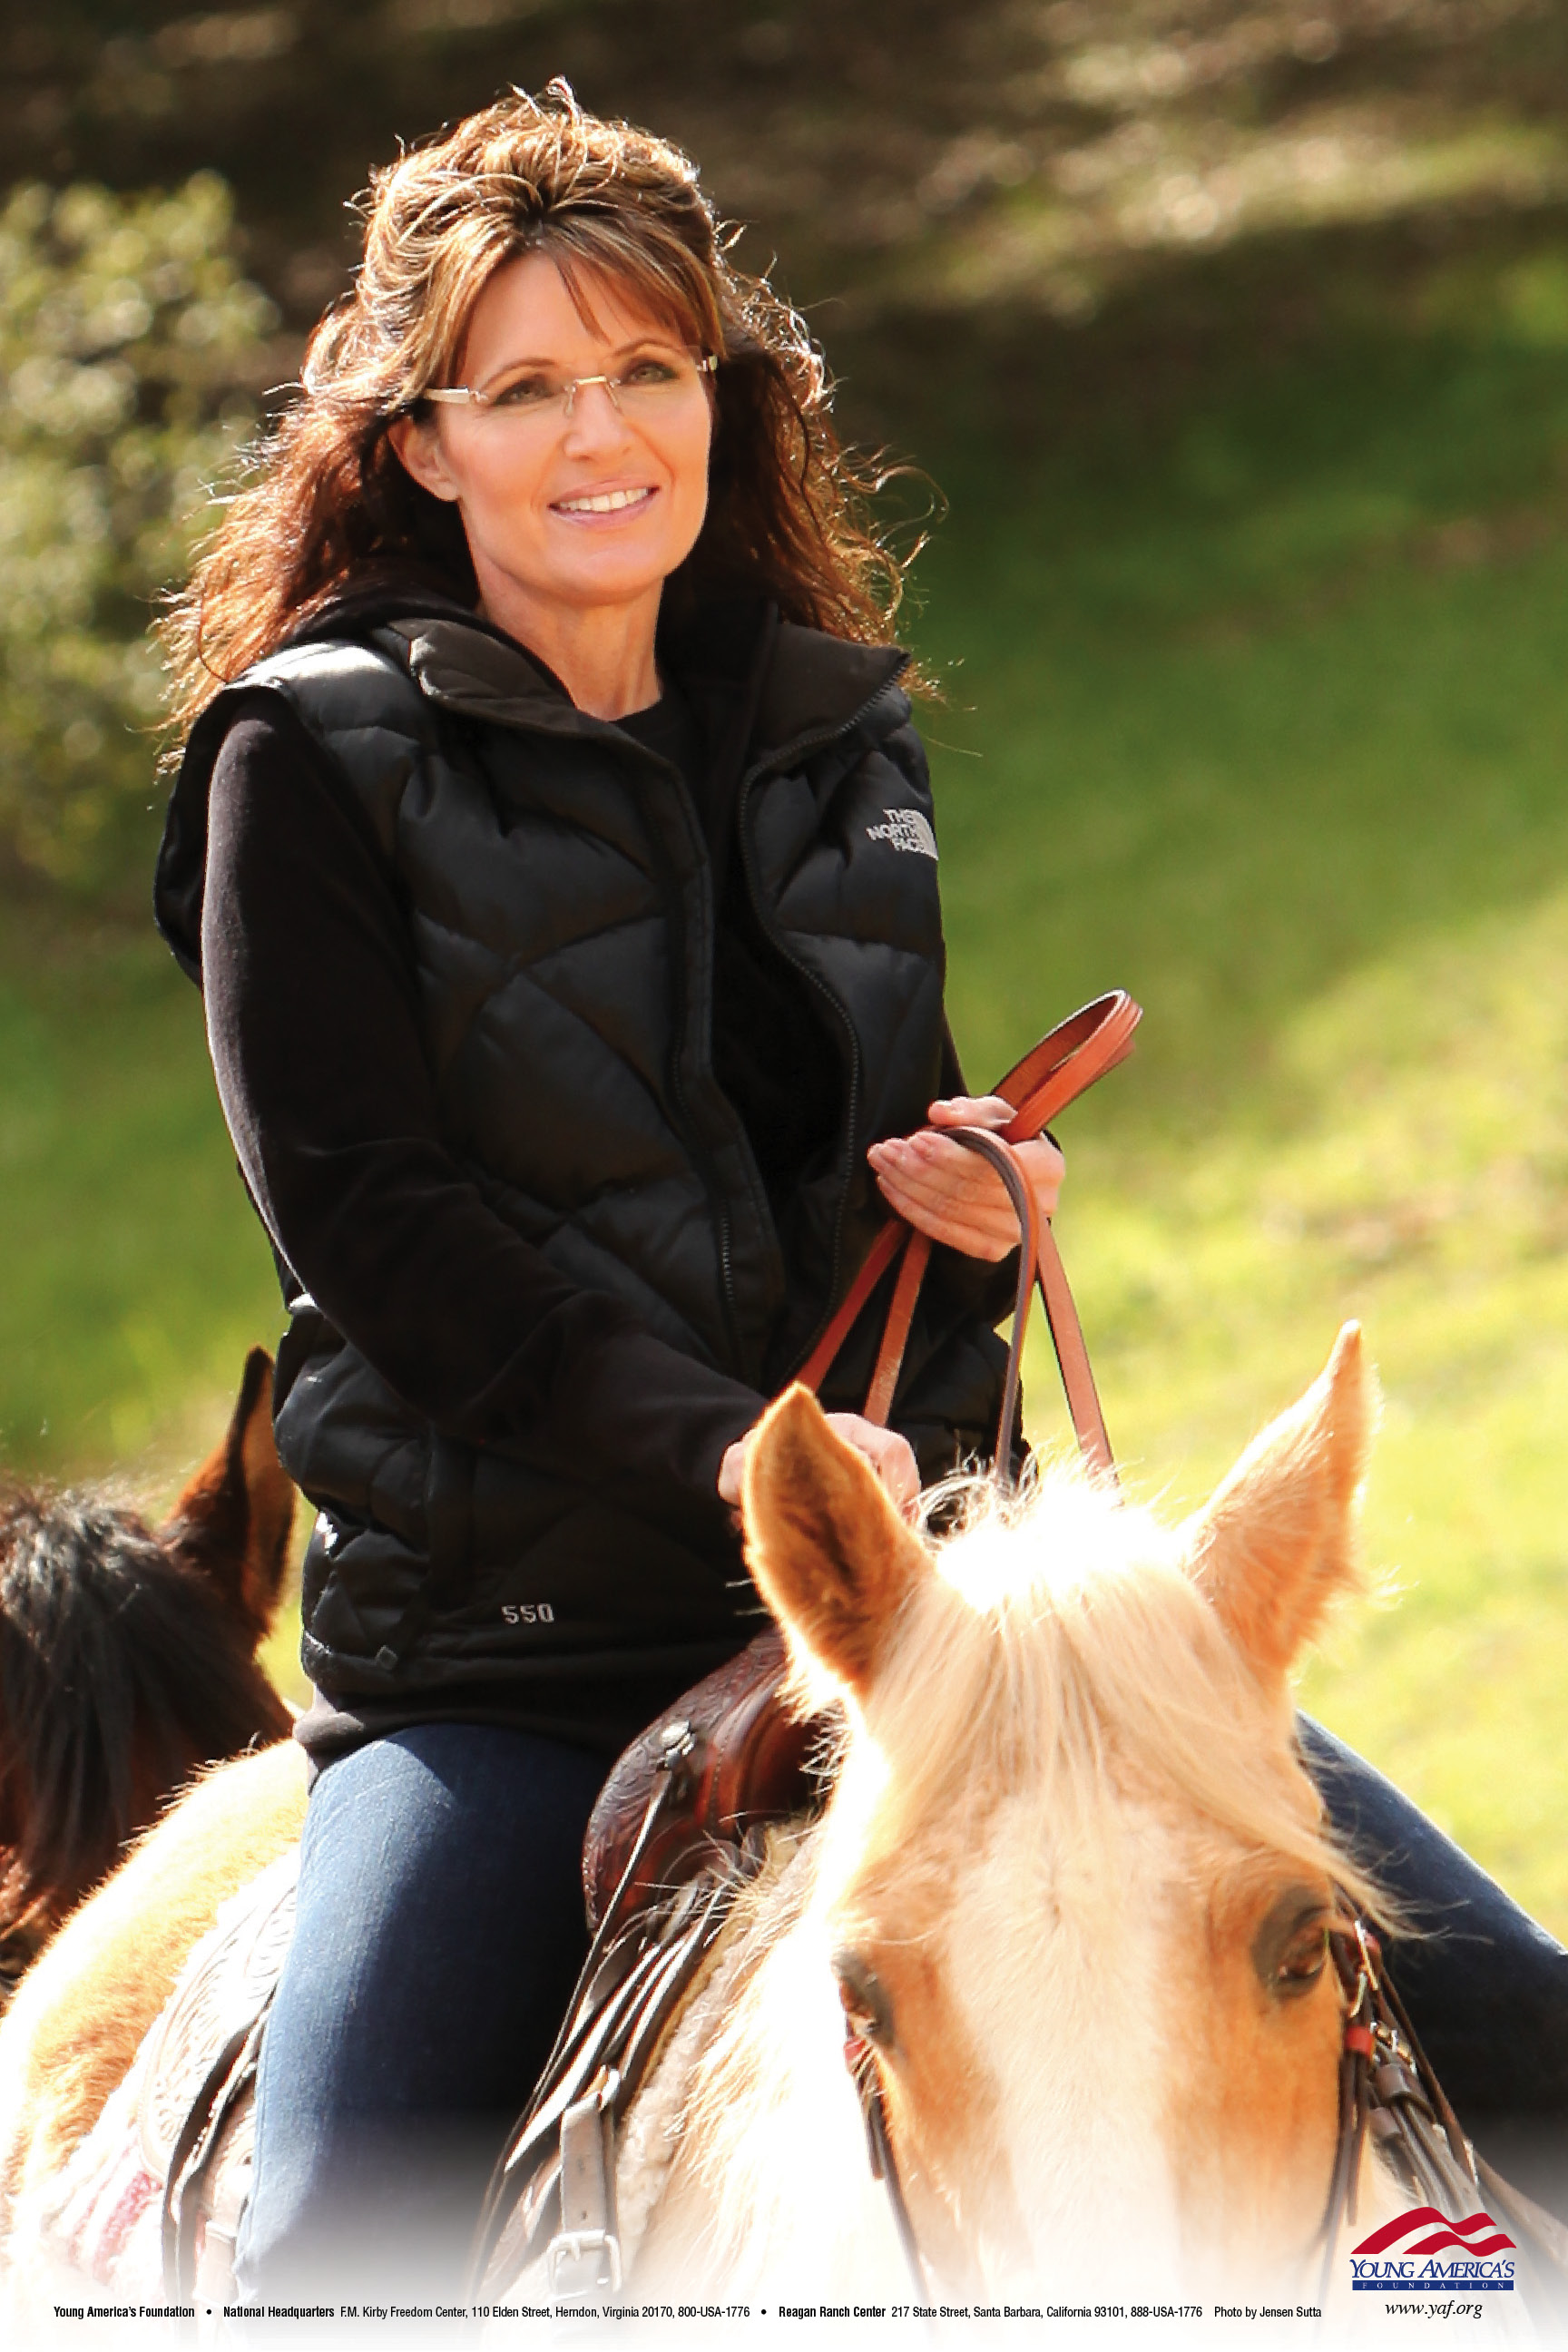 Sarah palin on horse young americas foundation posters altavistaventures Images